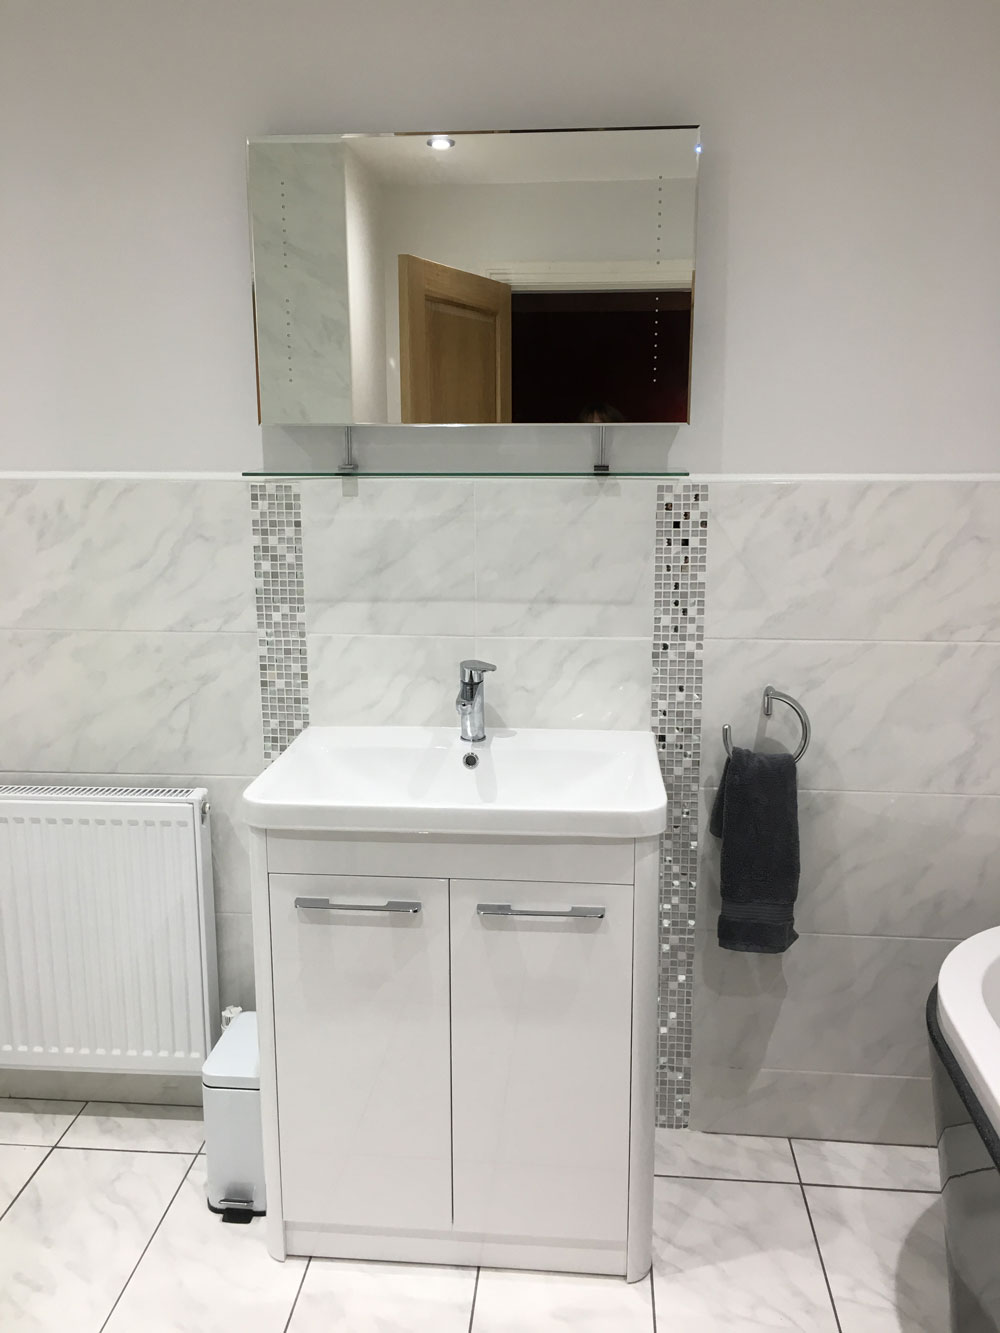 New Bathroom In Kings Norton Birmingham Installation Of Shower Bath - I need a new bathroom